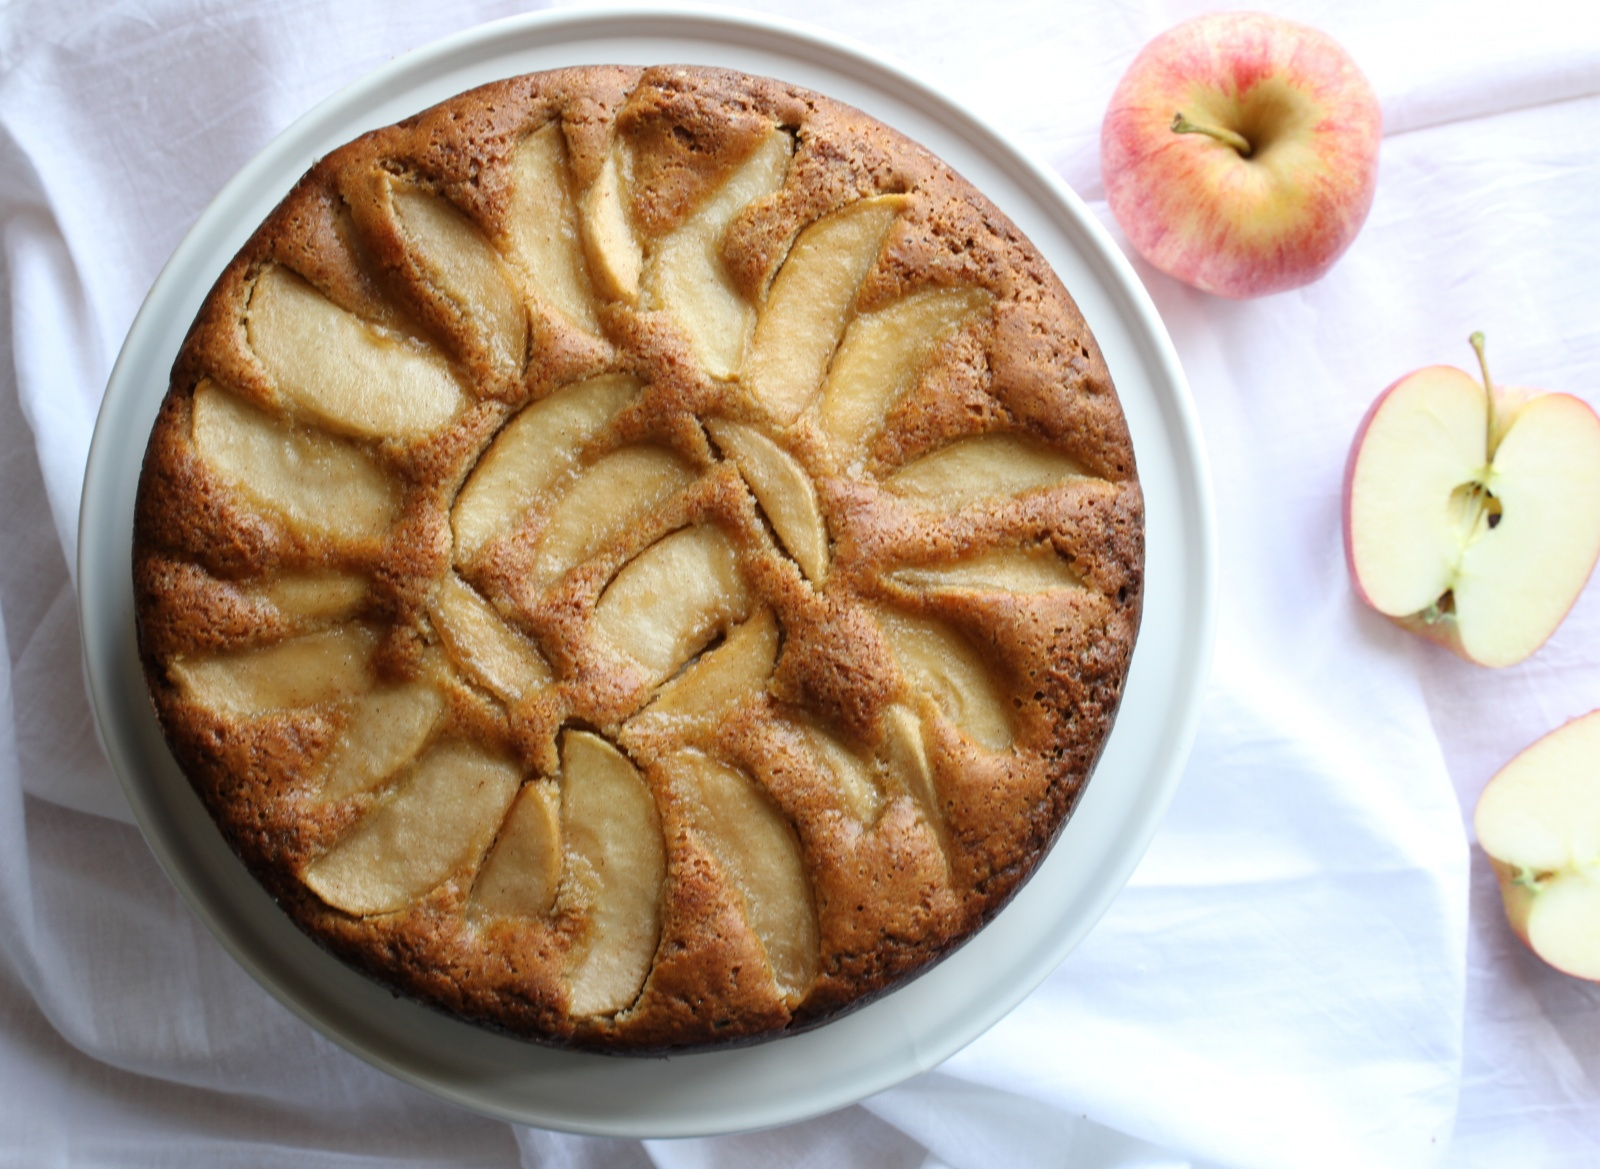 Simple and delicious Paleo Apple Cake for Rosh Hashanah